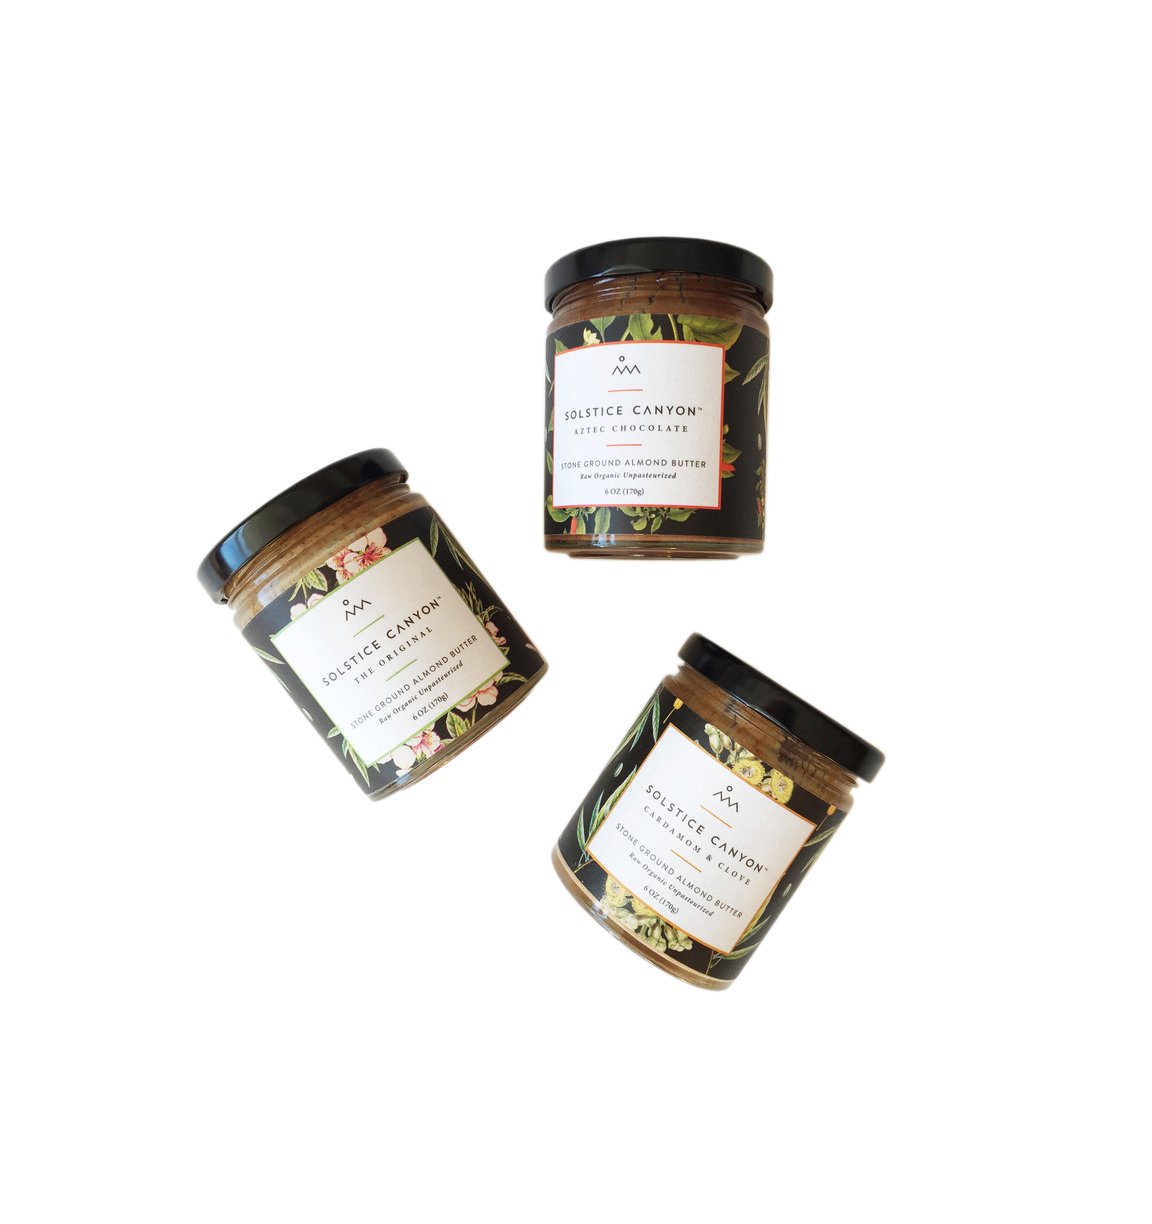 Solstice Canyon Almond Butter Gift Trio